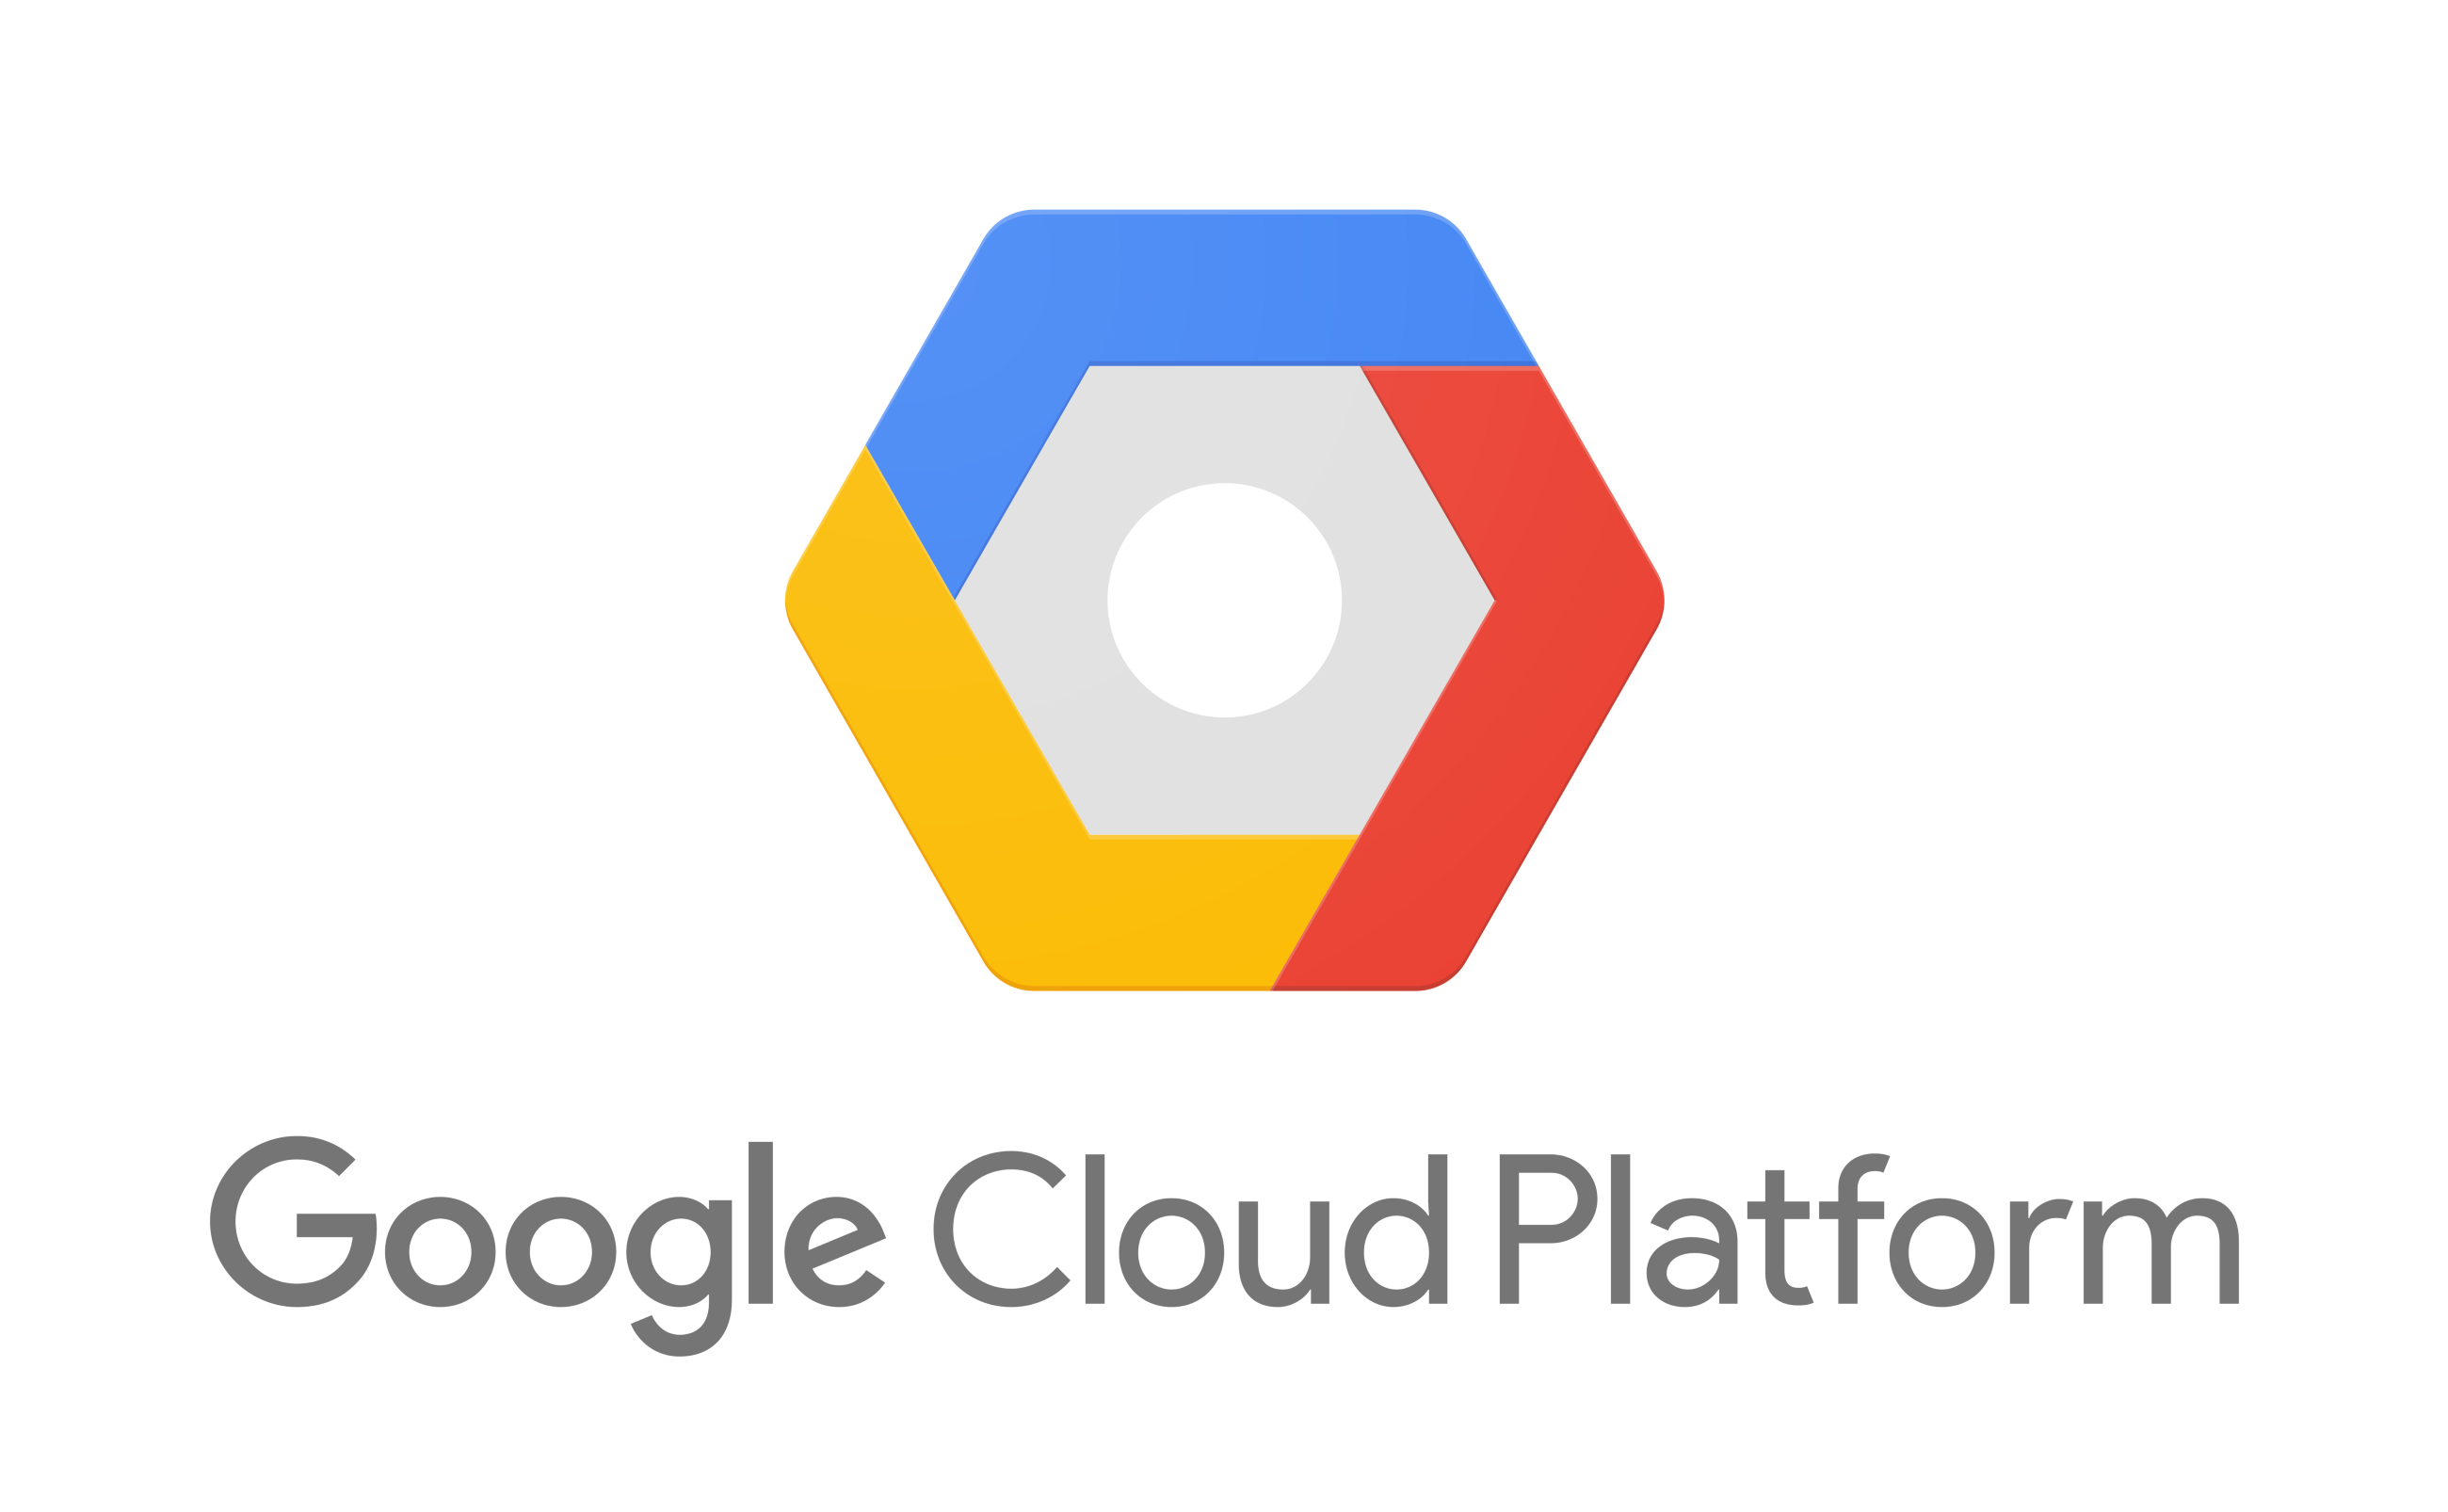 Deploy Keras Models On Google Cloud Platform Gcp And Make Predictions Over The Web In 2020 Cloud Platform Cloud Computing Services Clouds